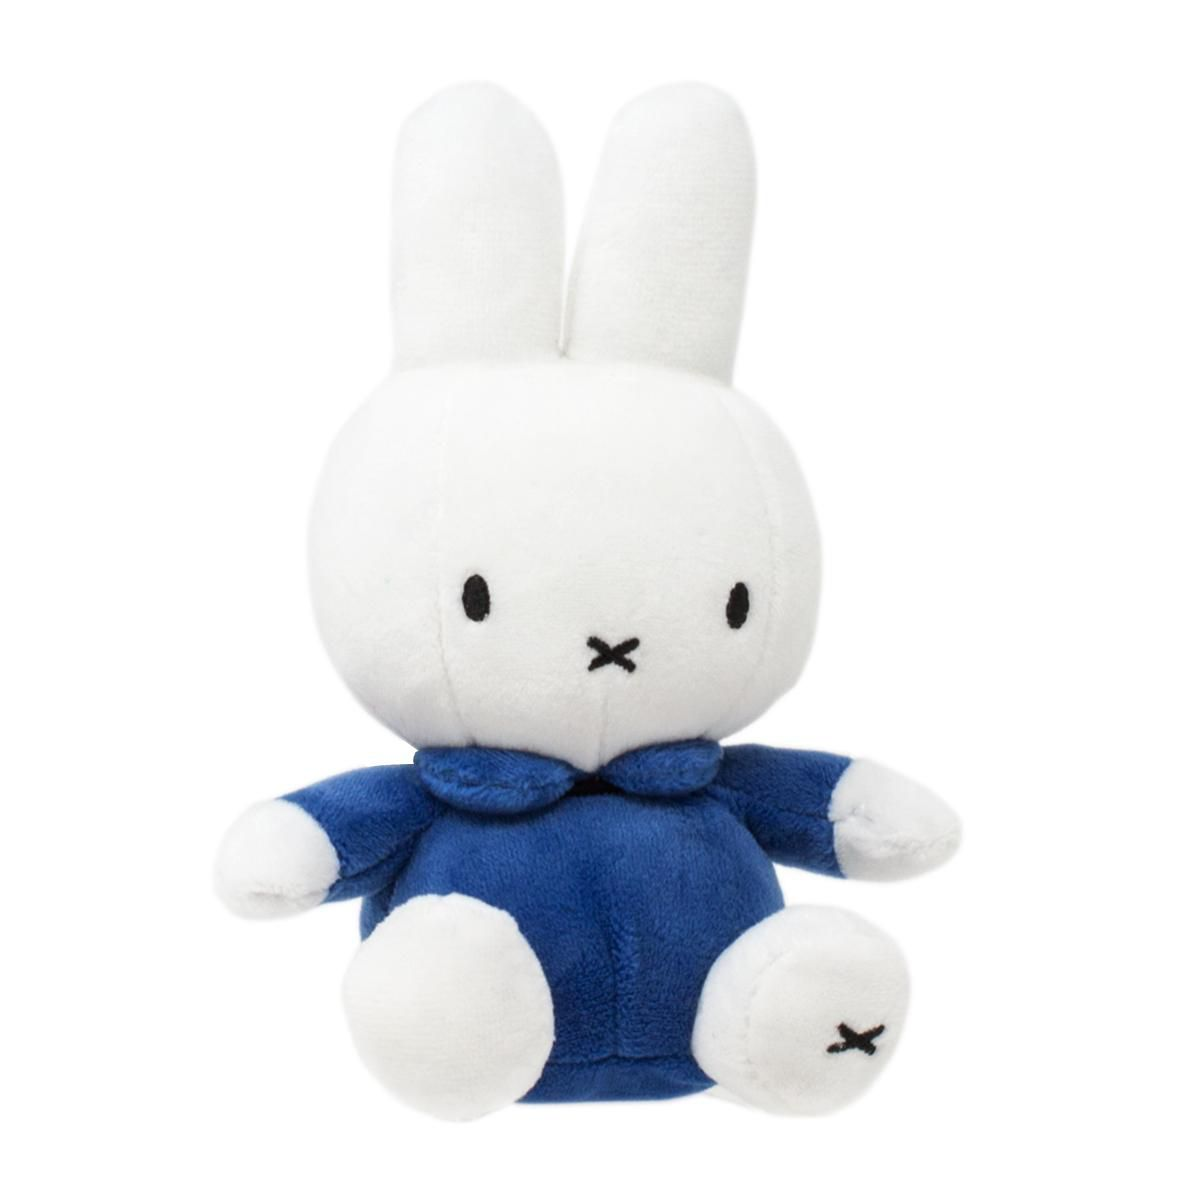 Classic Miffy Soft Toy in Blue Dress 16cm by Rainbow Designs MF1457BL